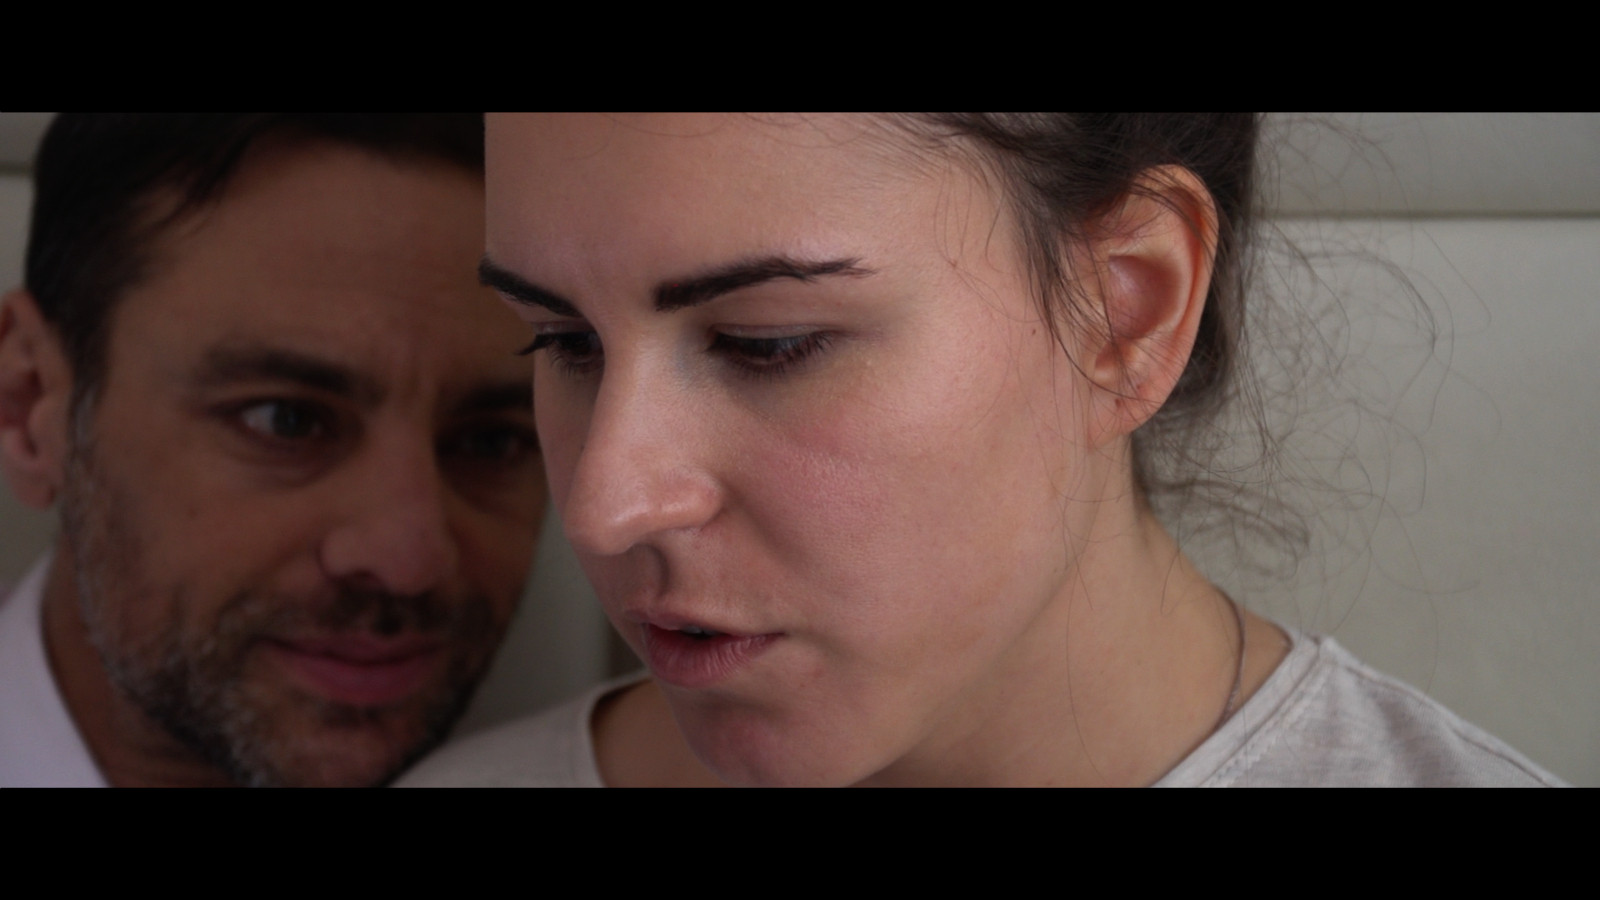 Still from short film Trapped featuring actors Gaia Poli and Malcolm Jeffries, forming part of Matthias' portfolio